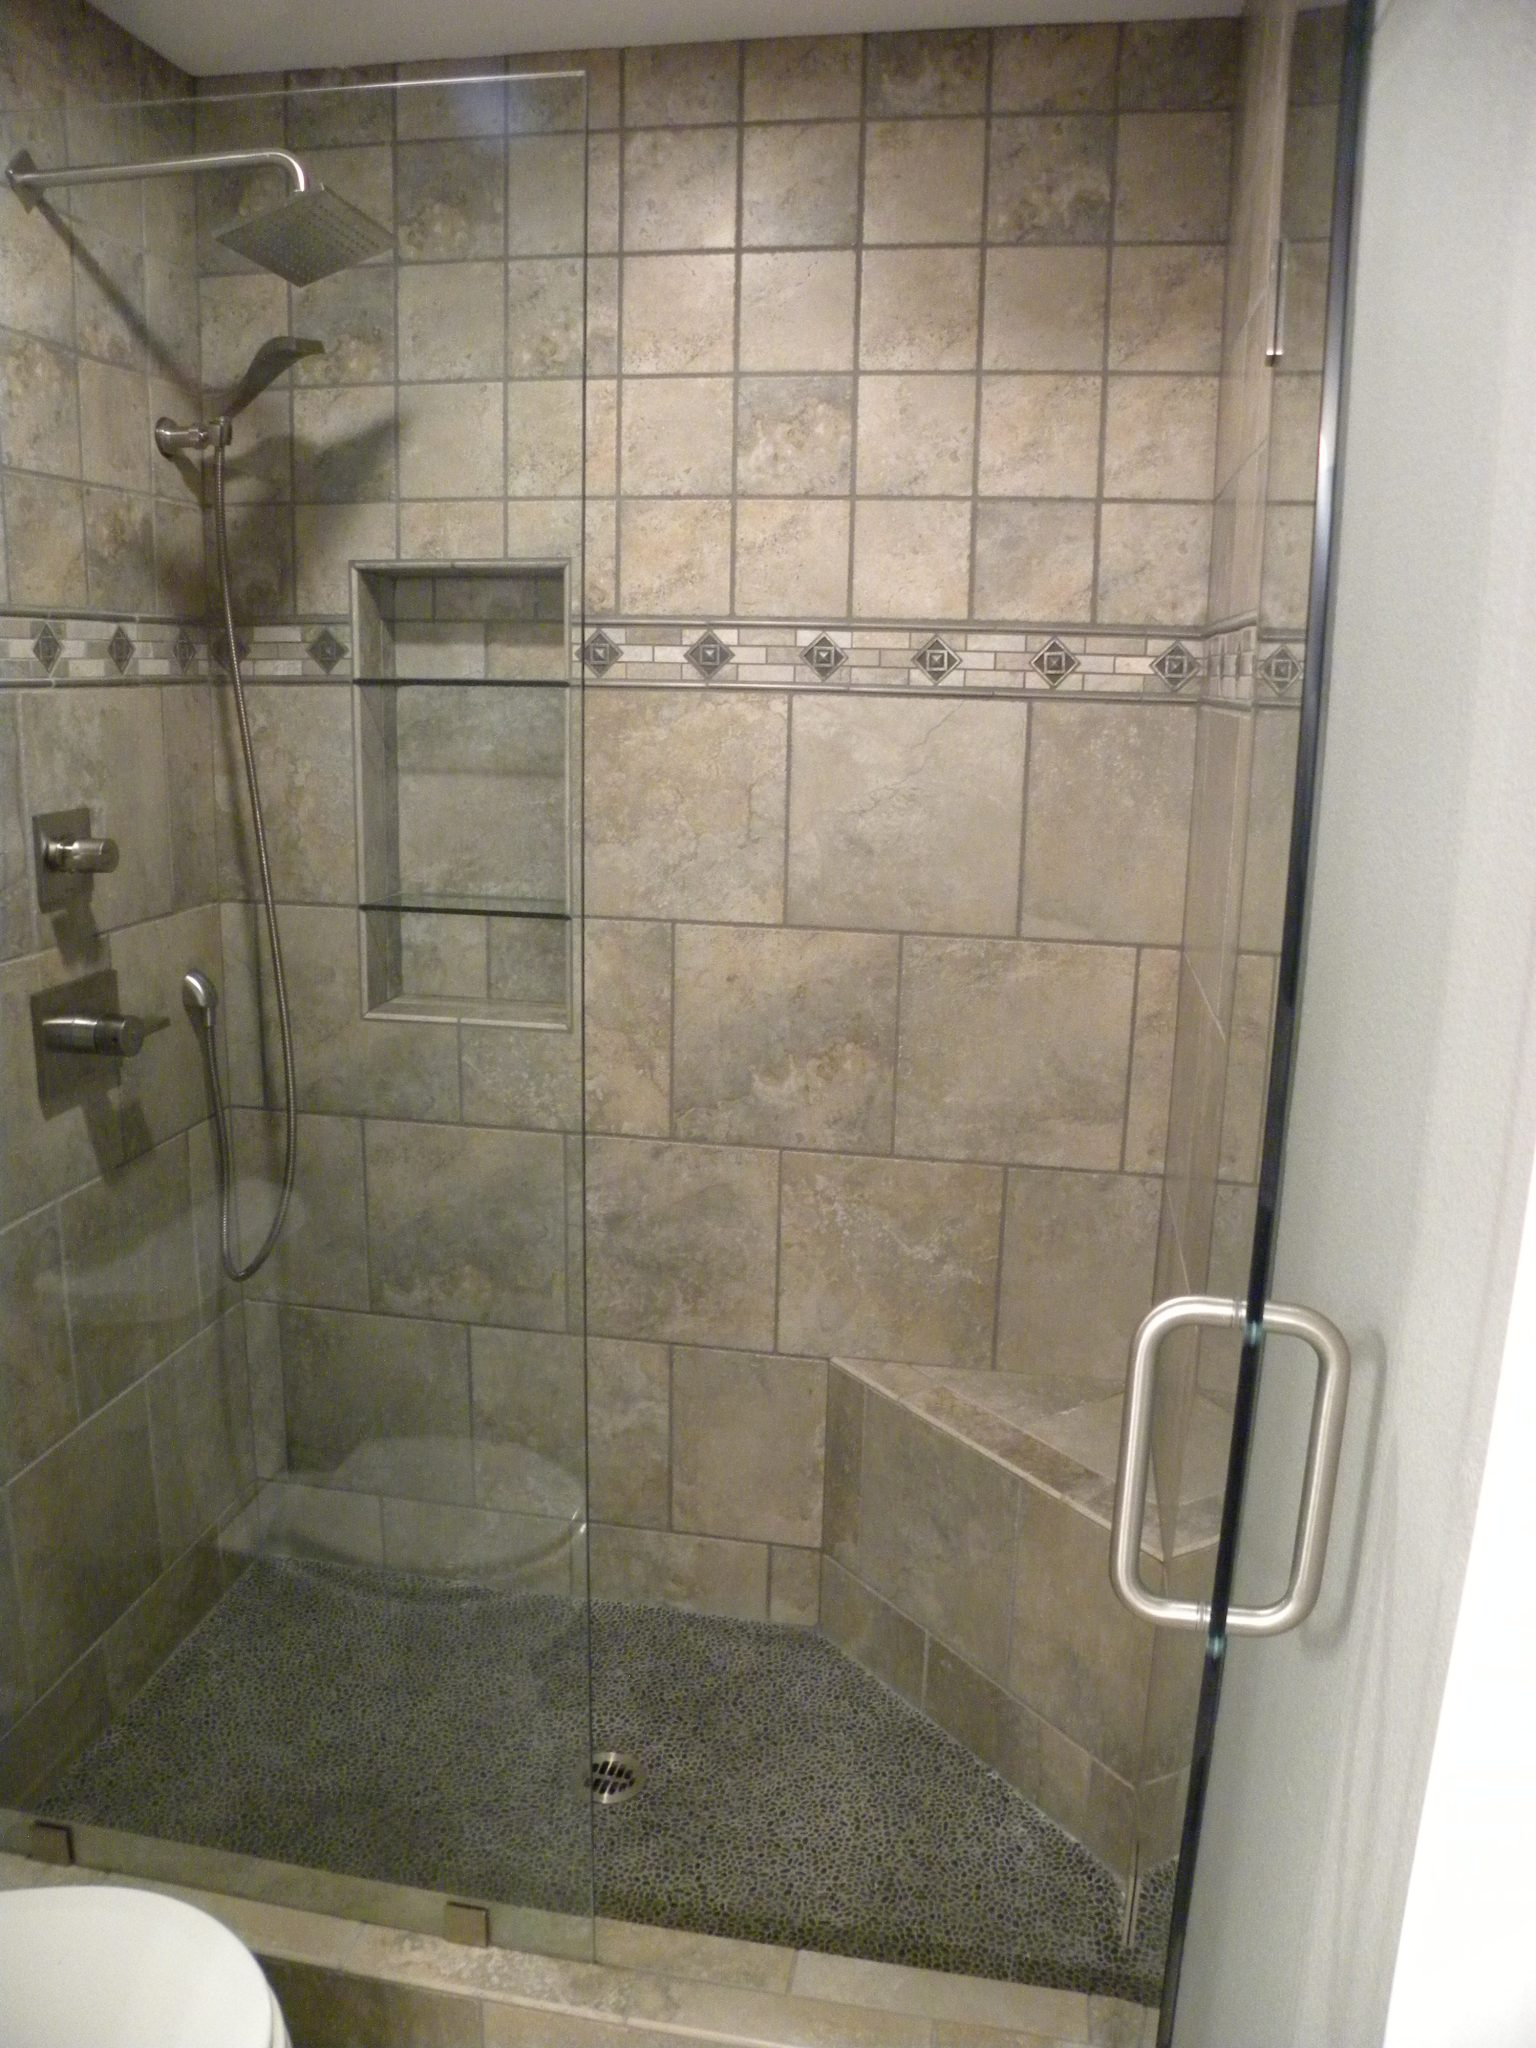 Interior shot of a custom designed shower with tan tiles and glass doors